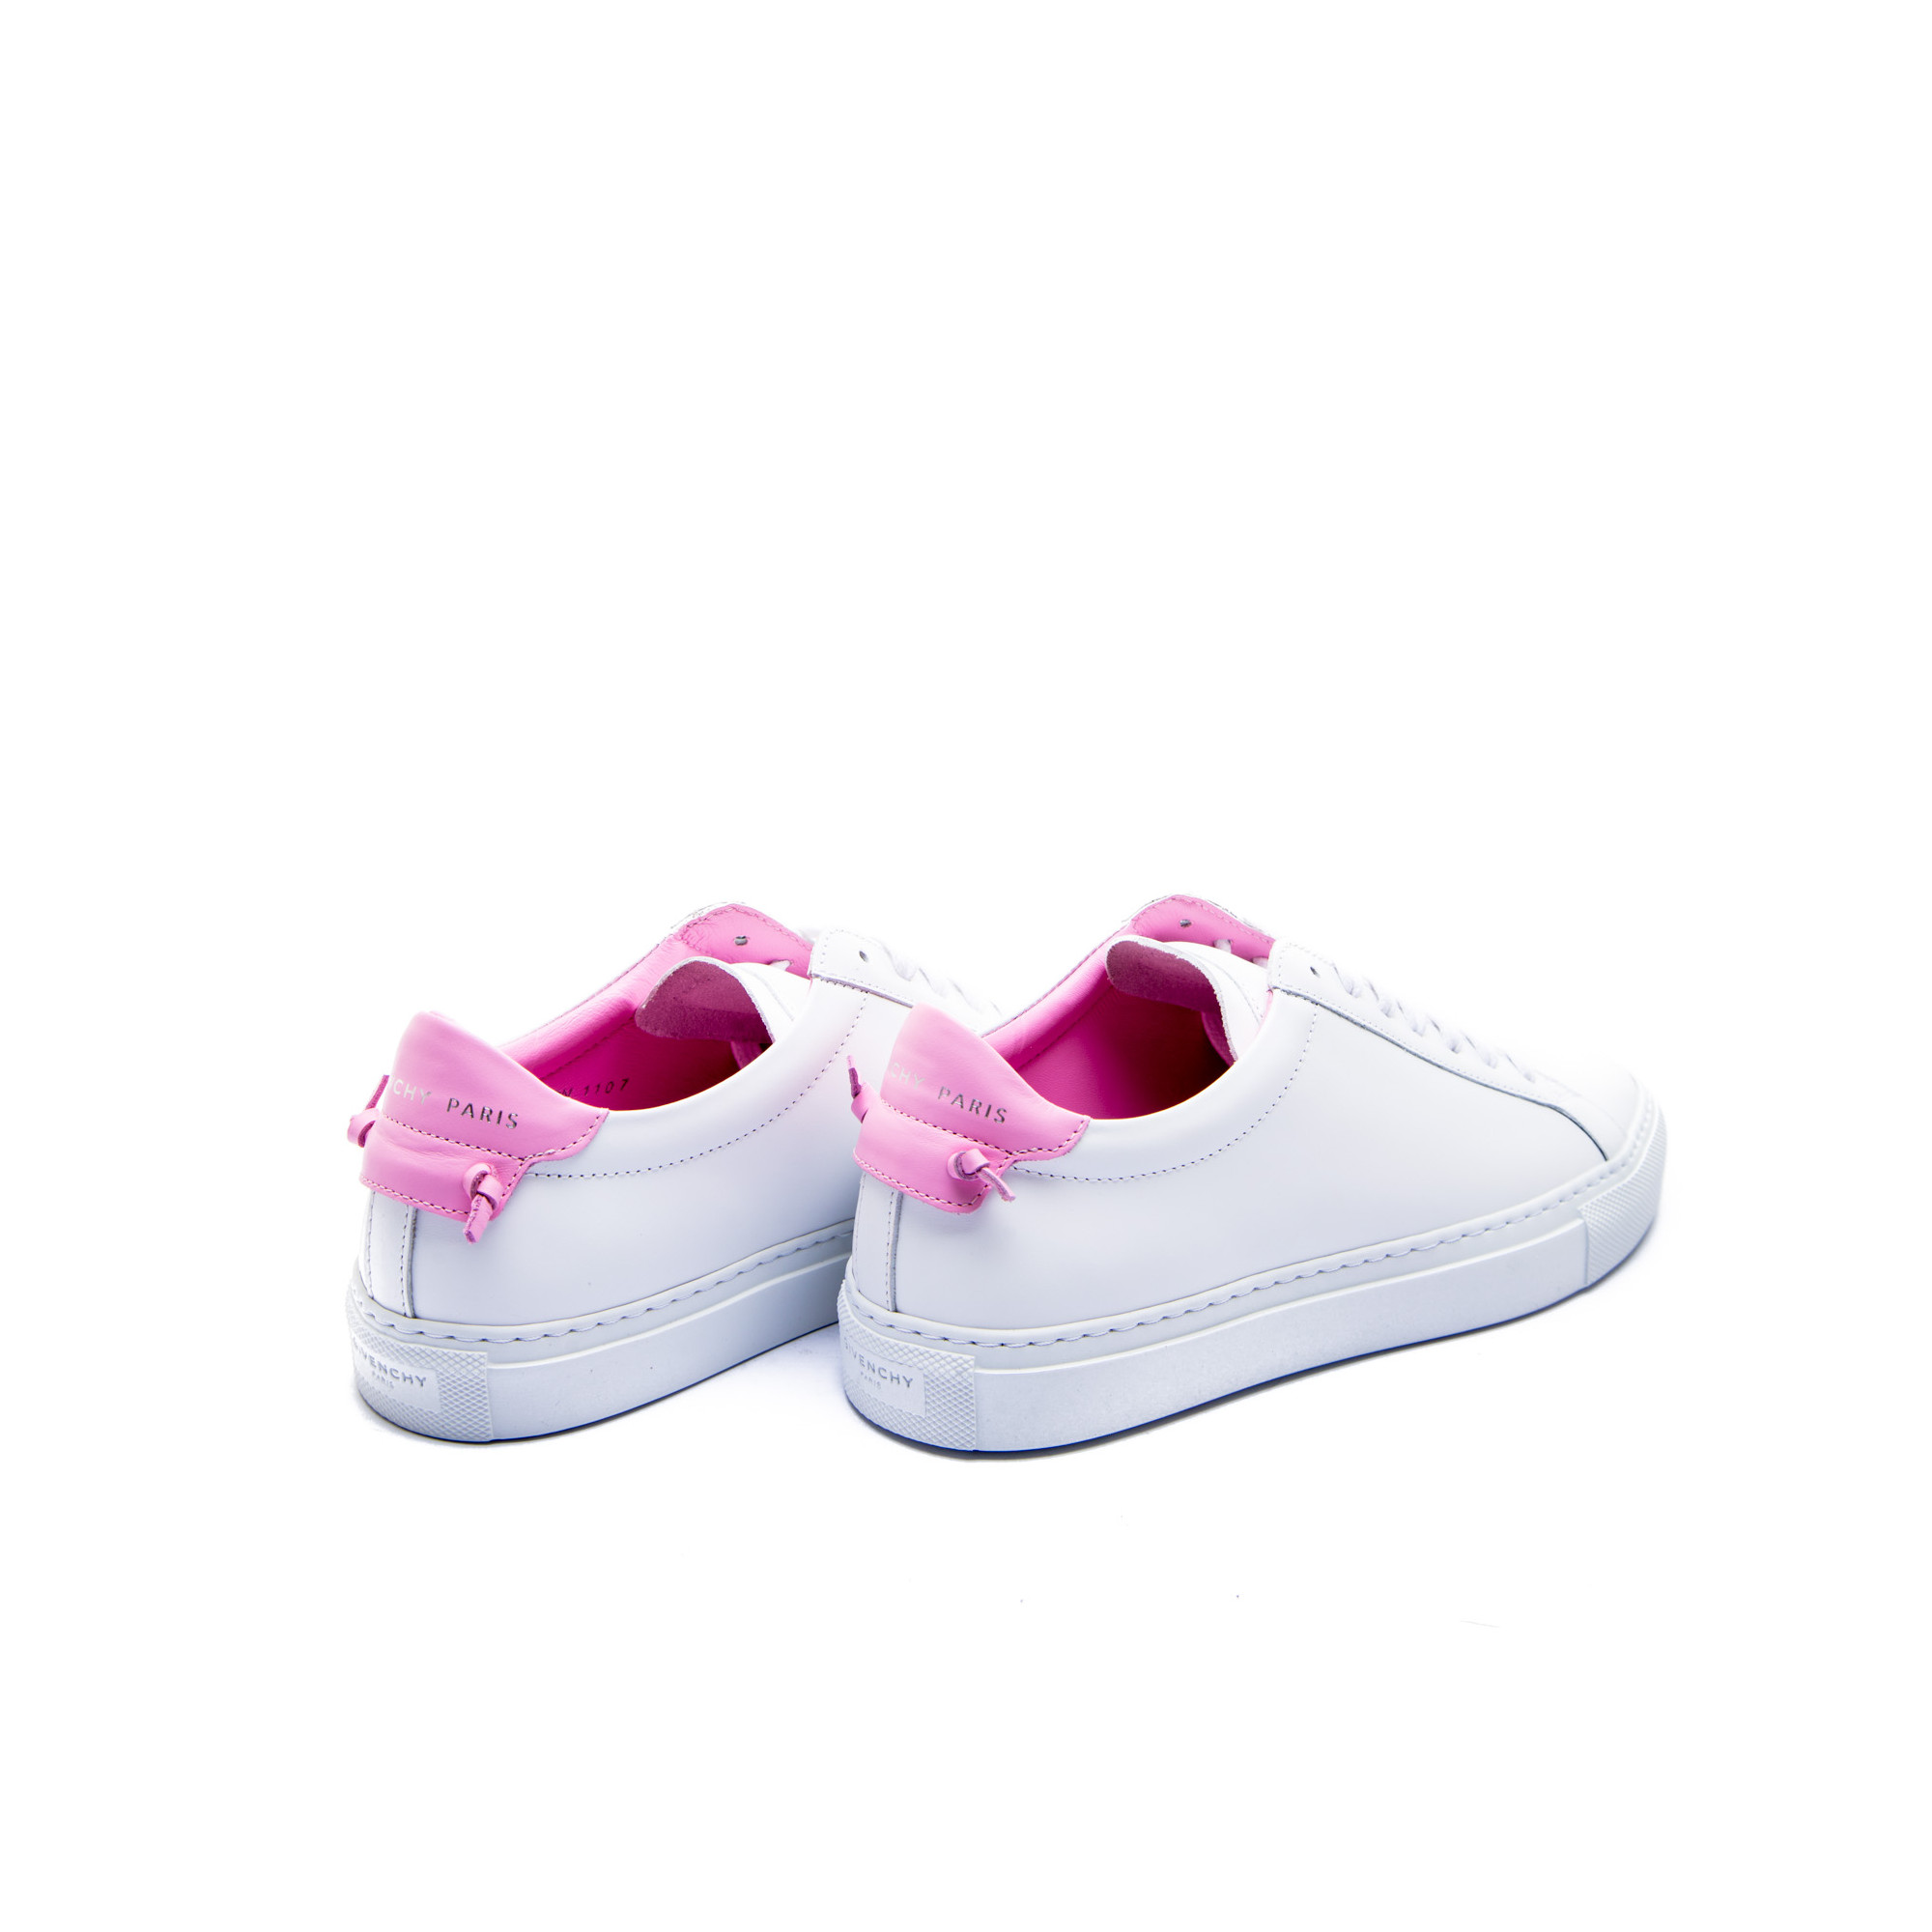 Urbain Rose Chaussures Givenchy Pour Les Femmes Urbaines FBpdHF2nSs